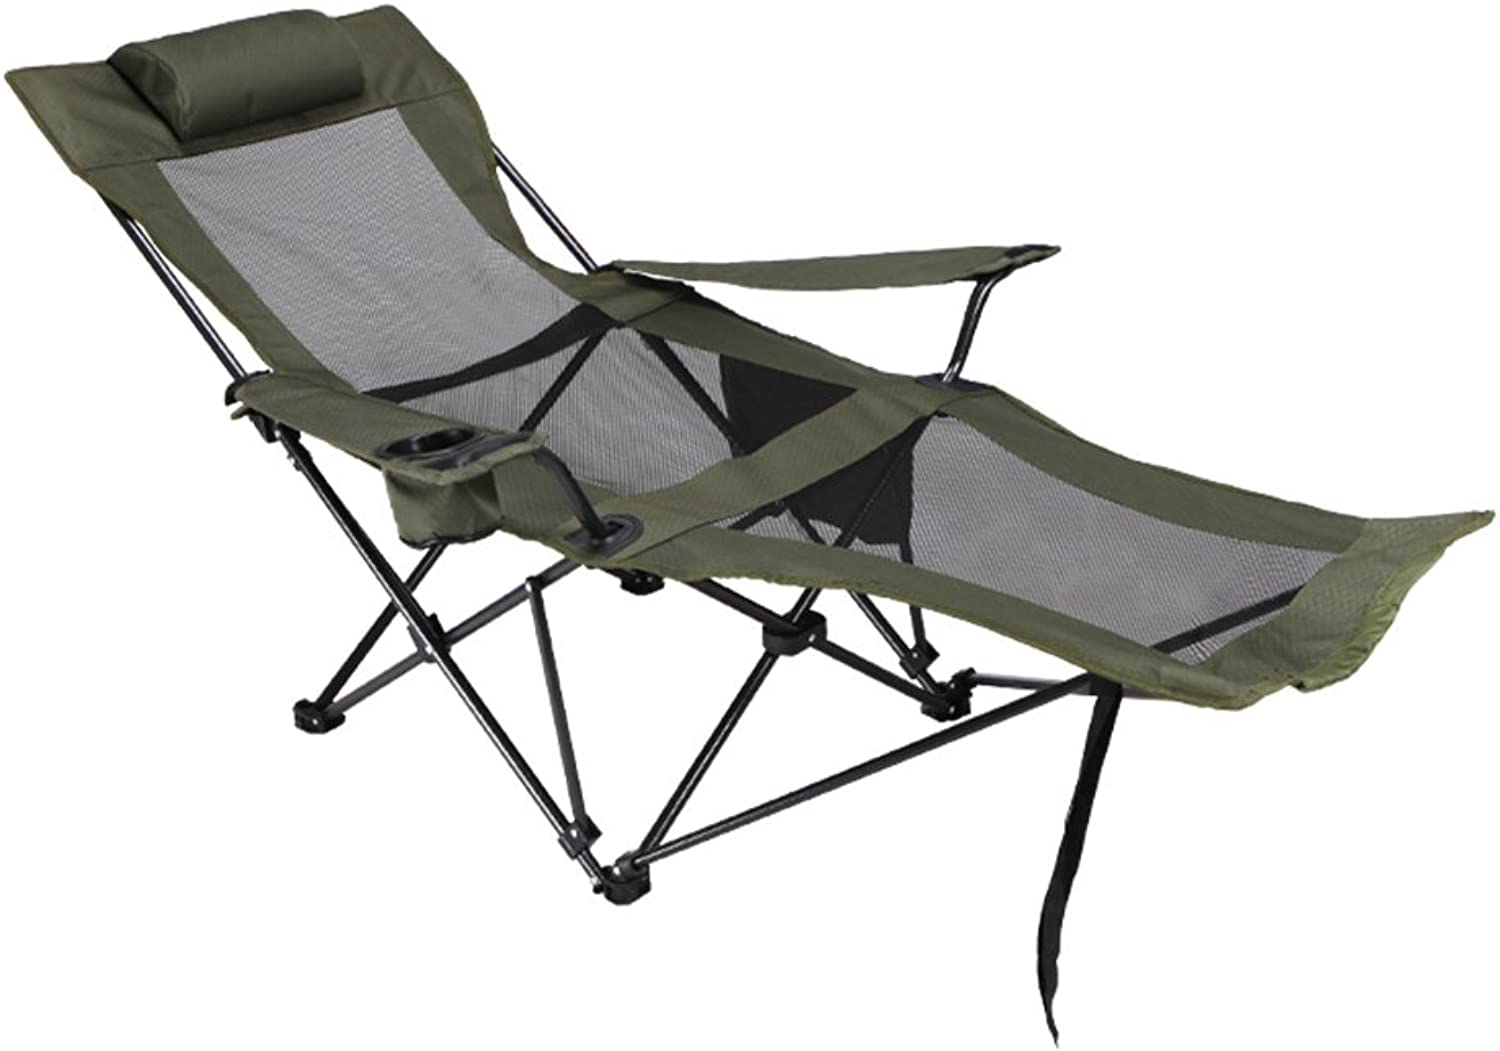 ZGL Outdoors Folding Camping Chair Lunch Break Recliner Lightweight Comfortable for All Outdoor Events in Lawn Beach Fishing Hiking